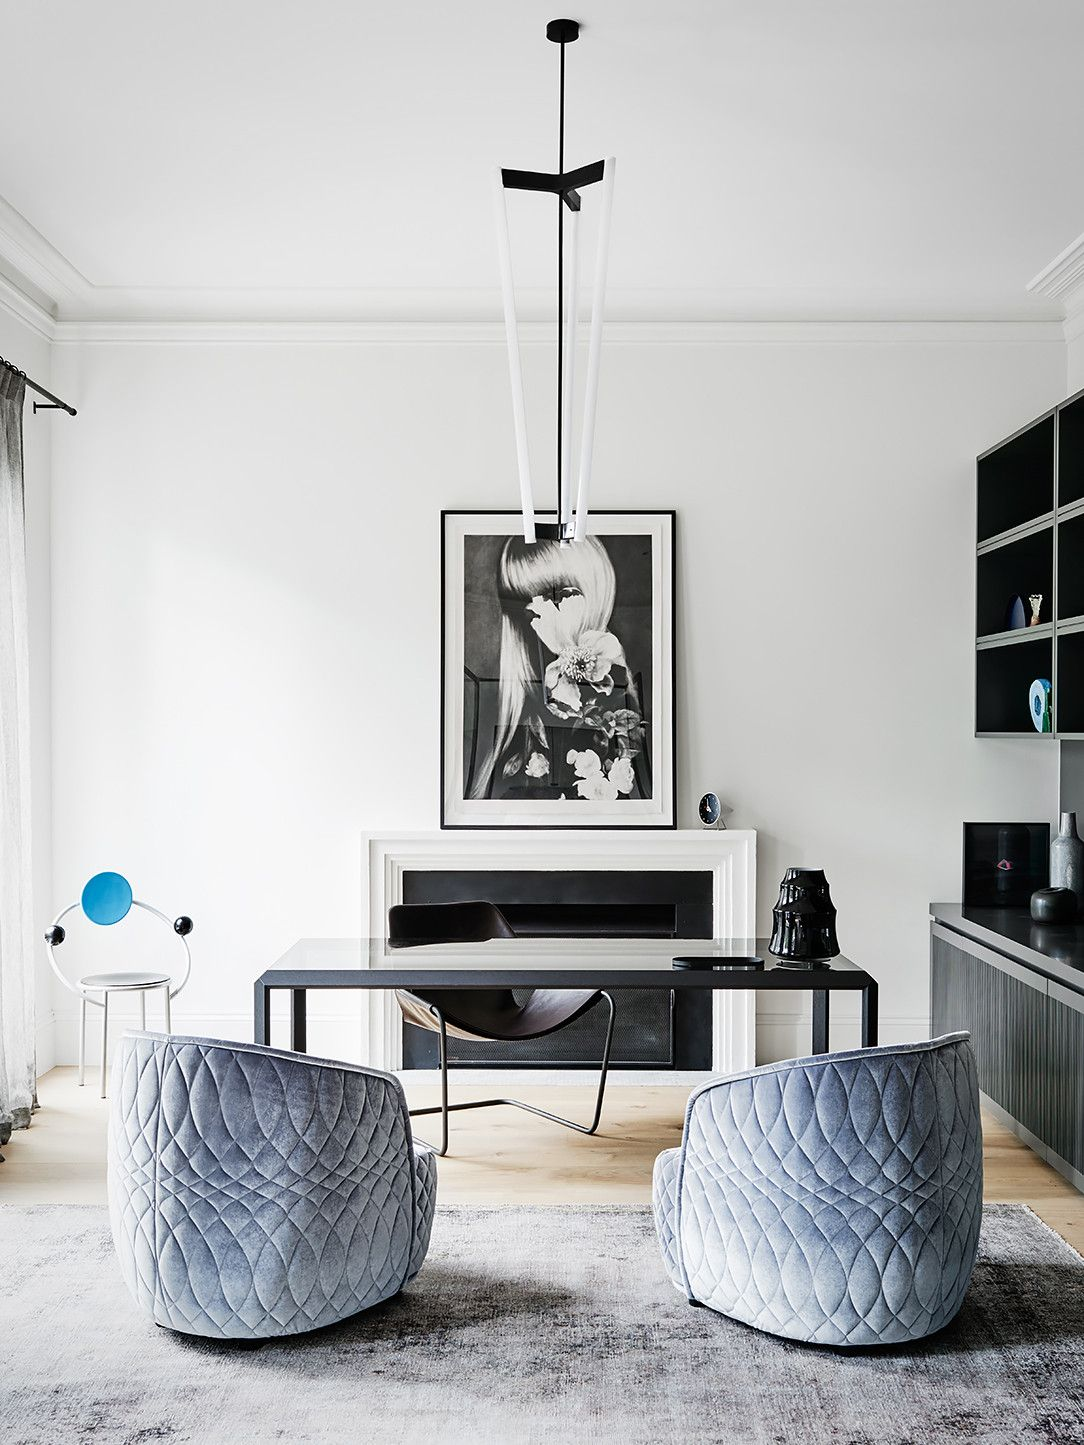 inside an n home insane attention to detail this is how n s design interiors and we love their attention to detail this melbourne residence has major moody vibes